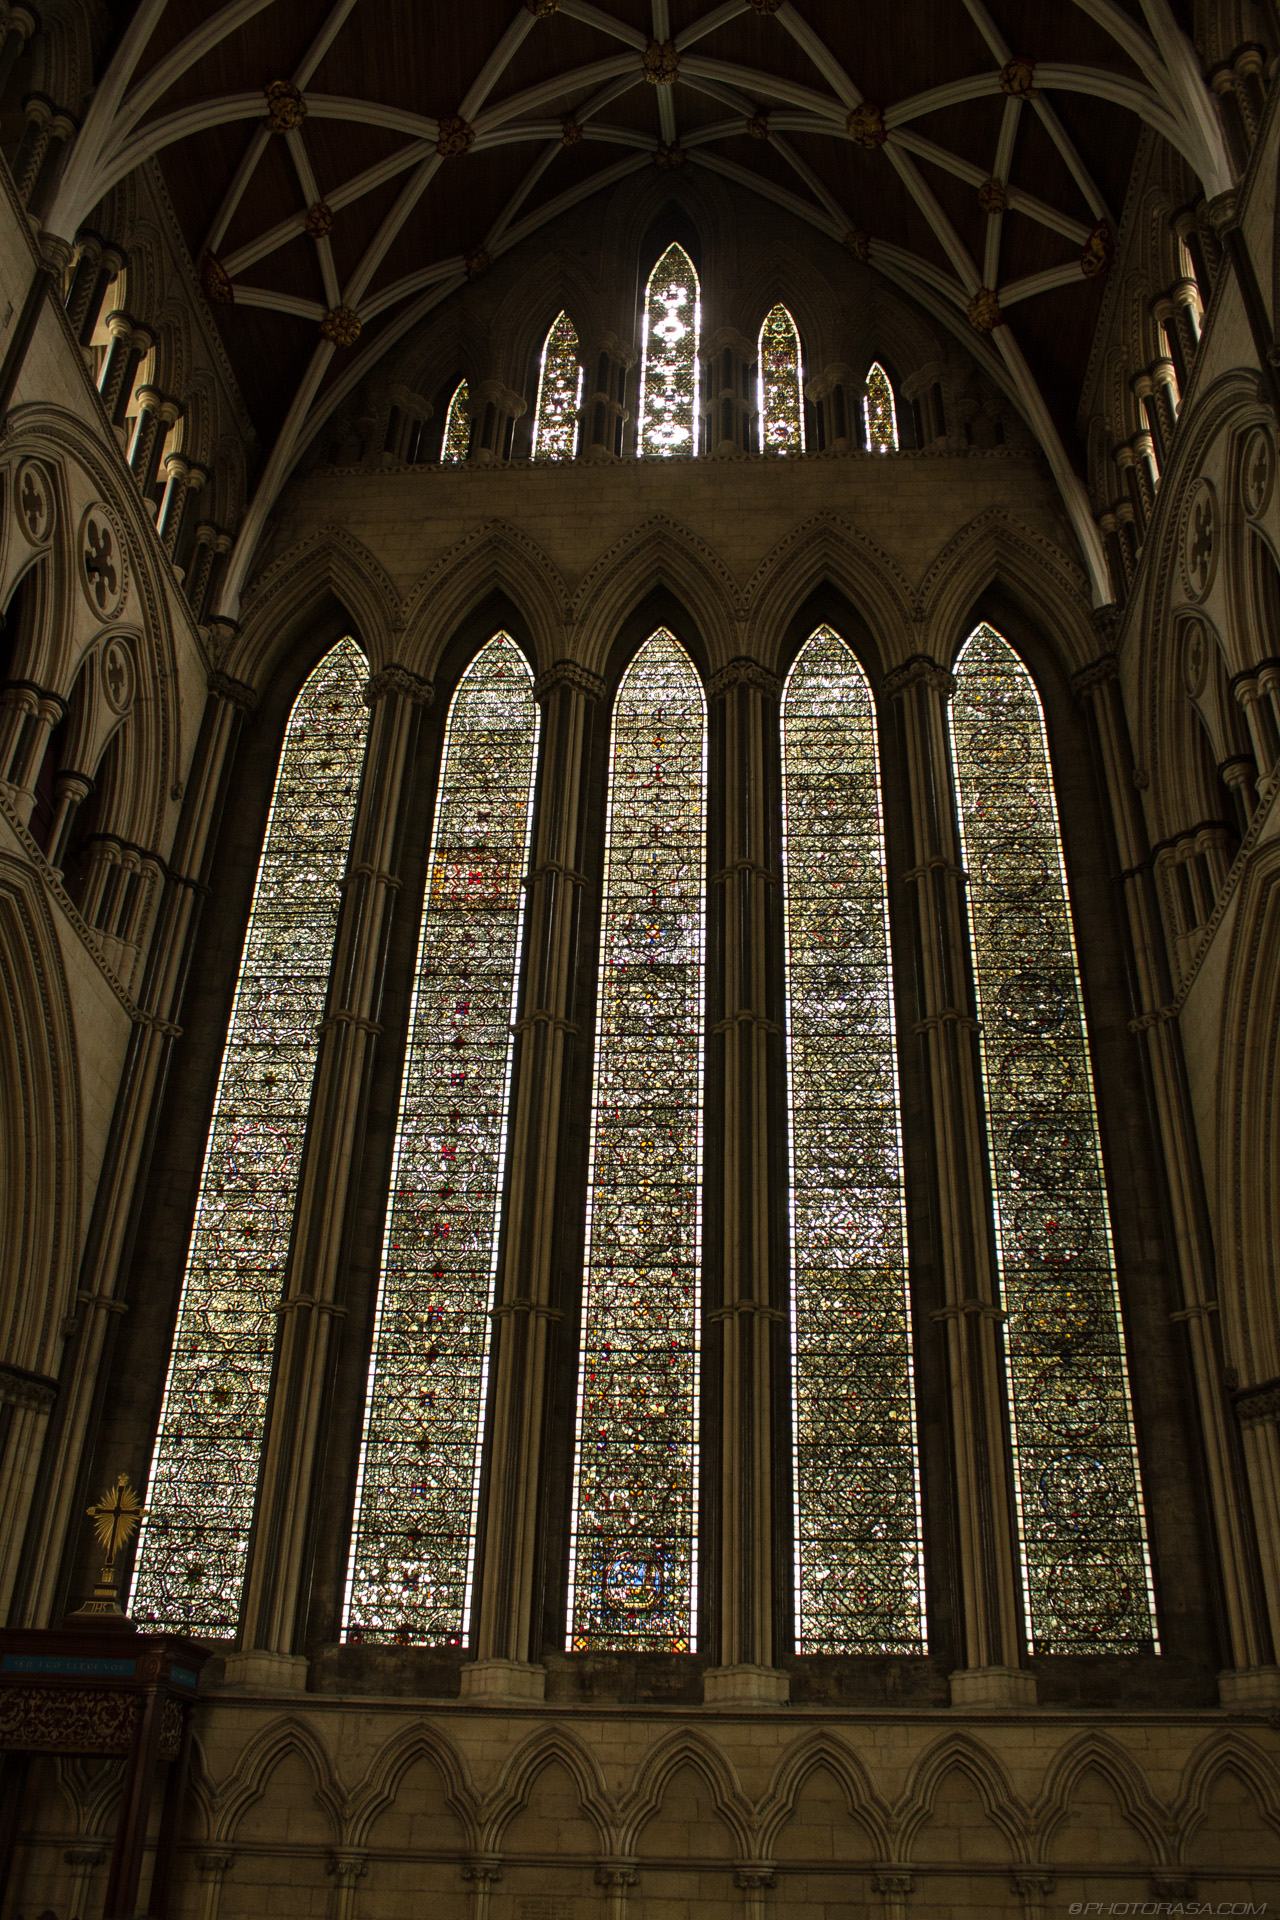 http://photorasa.com/yorkminster-cathedral/west-window/